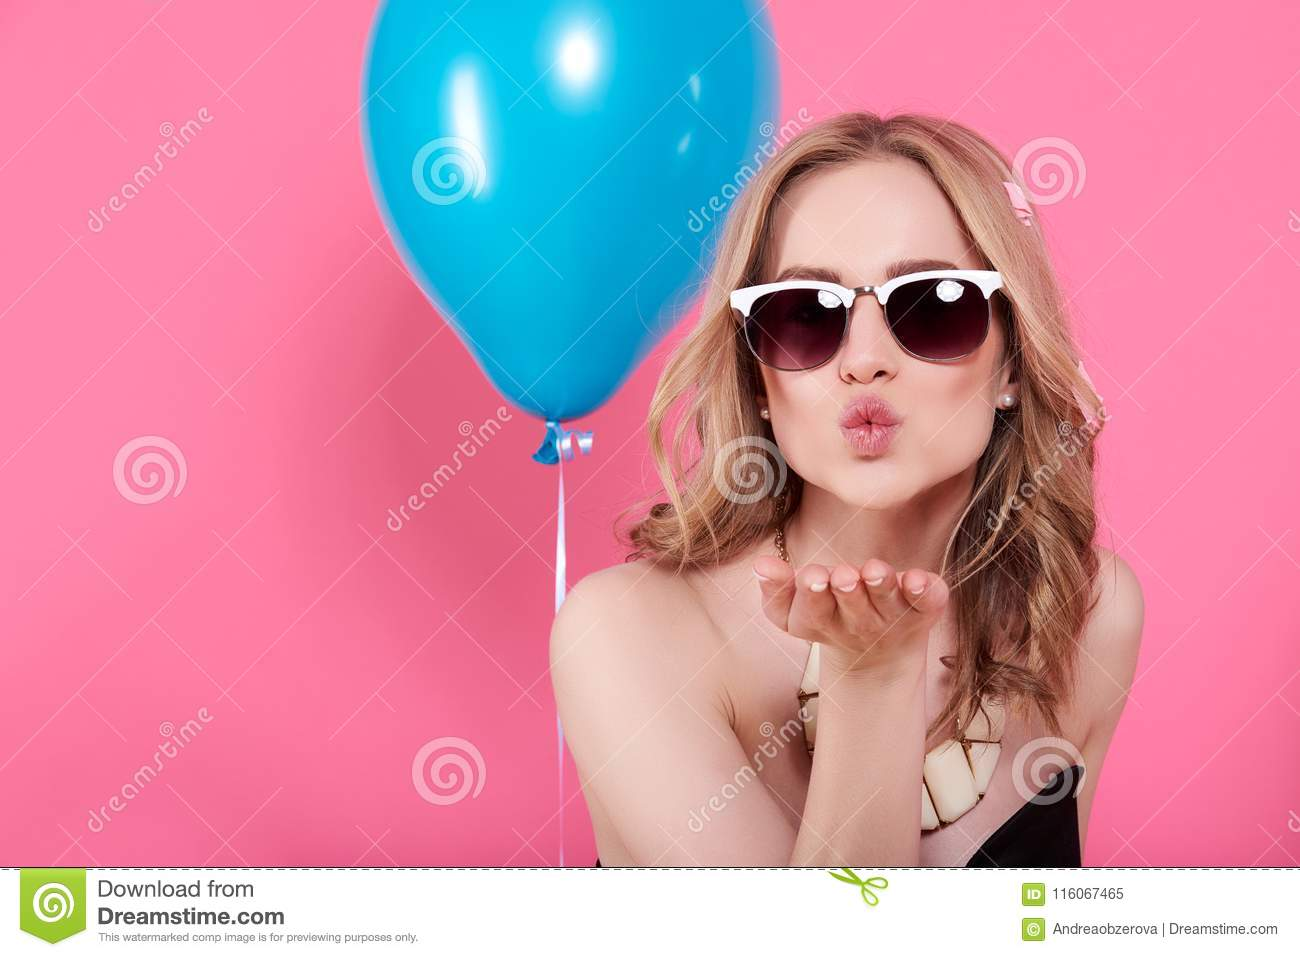 Attractive blonde young woman in elegant party dress and golden jewelry celebrating birthday and blowing a kiss towards camera.